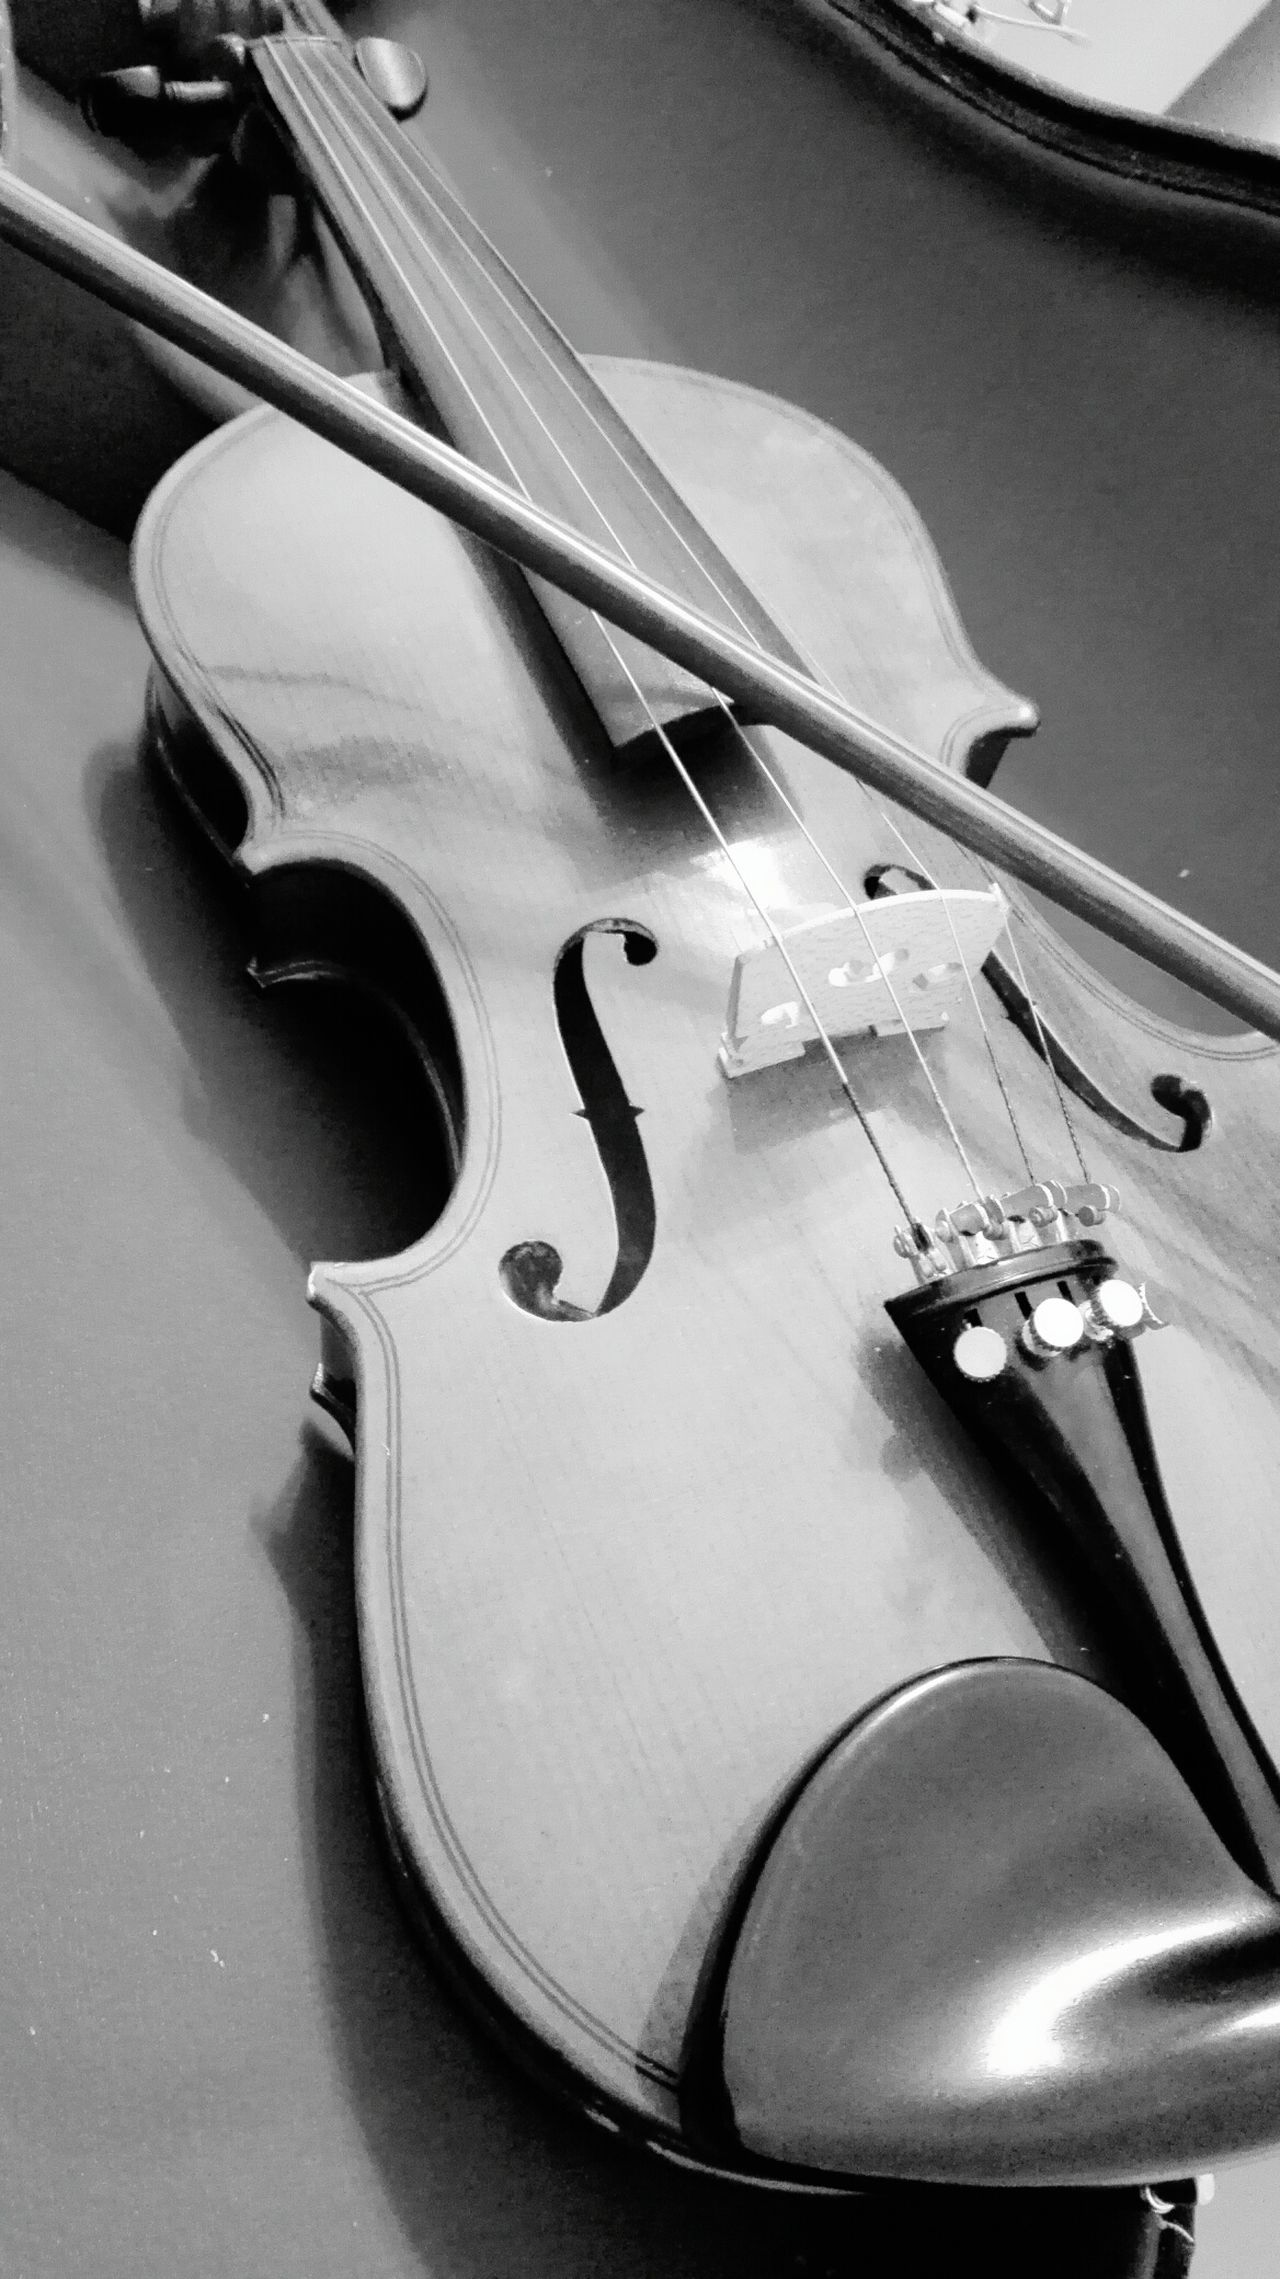 Taking Photos Cellphone Photography Huawei Shots Photos Of Arround You Blackandwhite Photography Blackandwhite Musical Instruments Music Violon Violin